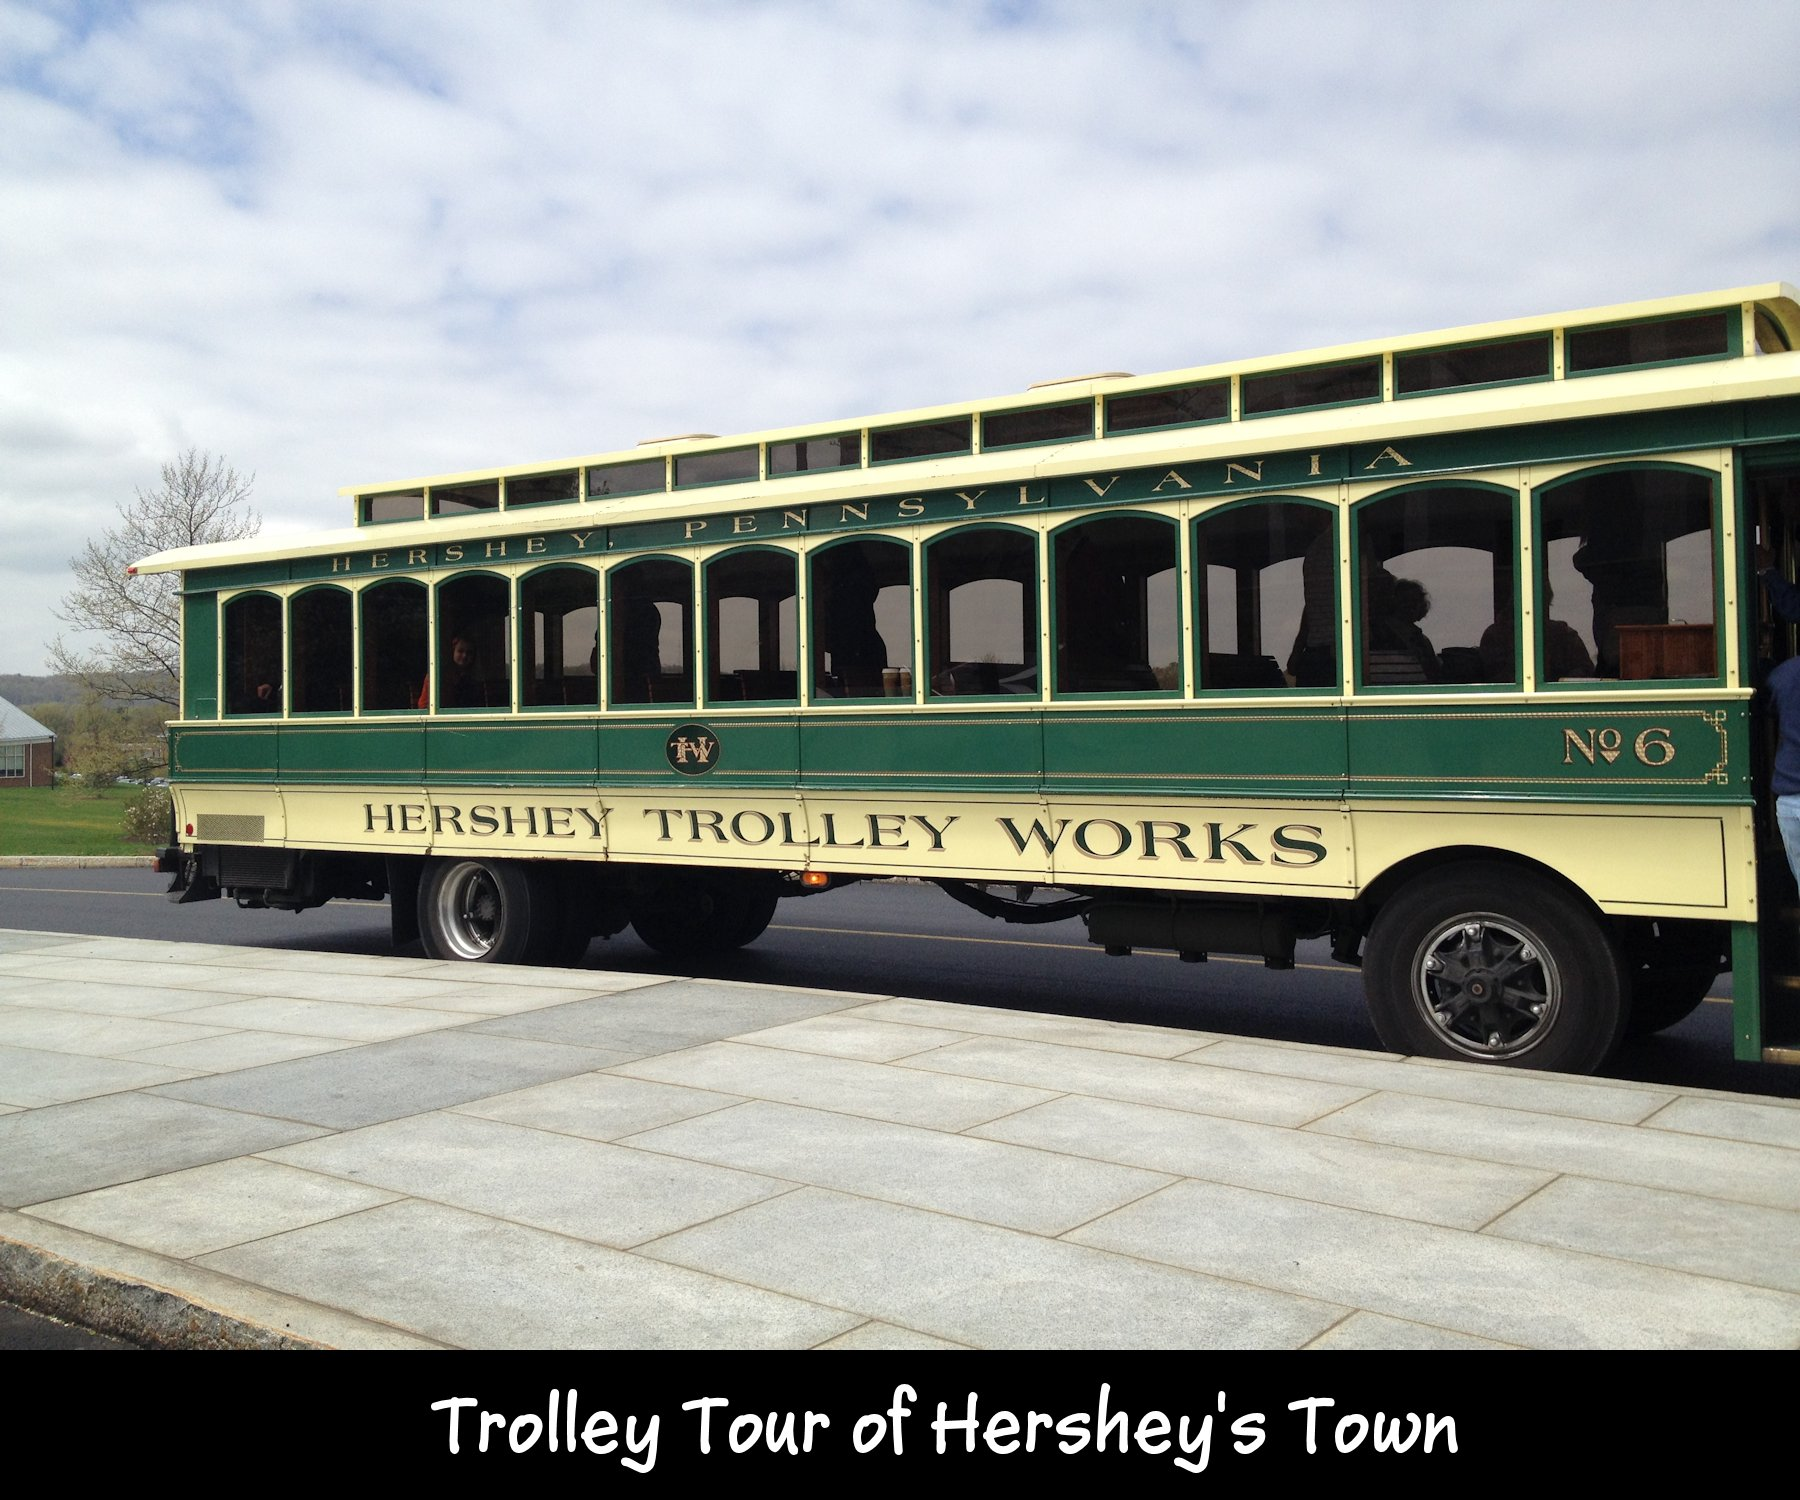 A guided tour loaded with fun, frolic and of course chocolate! The Hershey trolley works operates guided tours through the town taking you to all the major attractions/5(5).